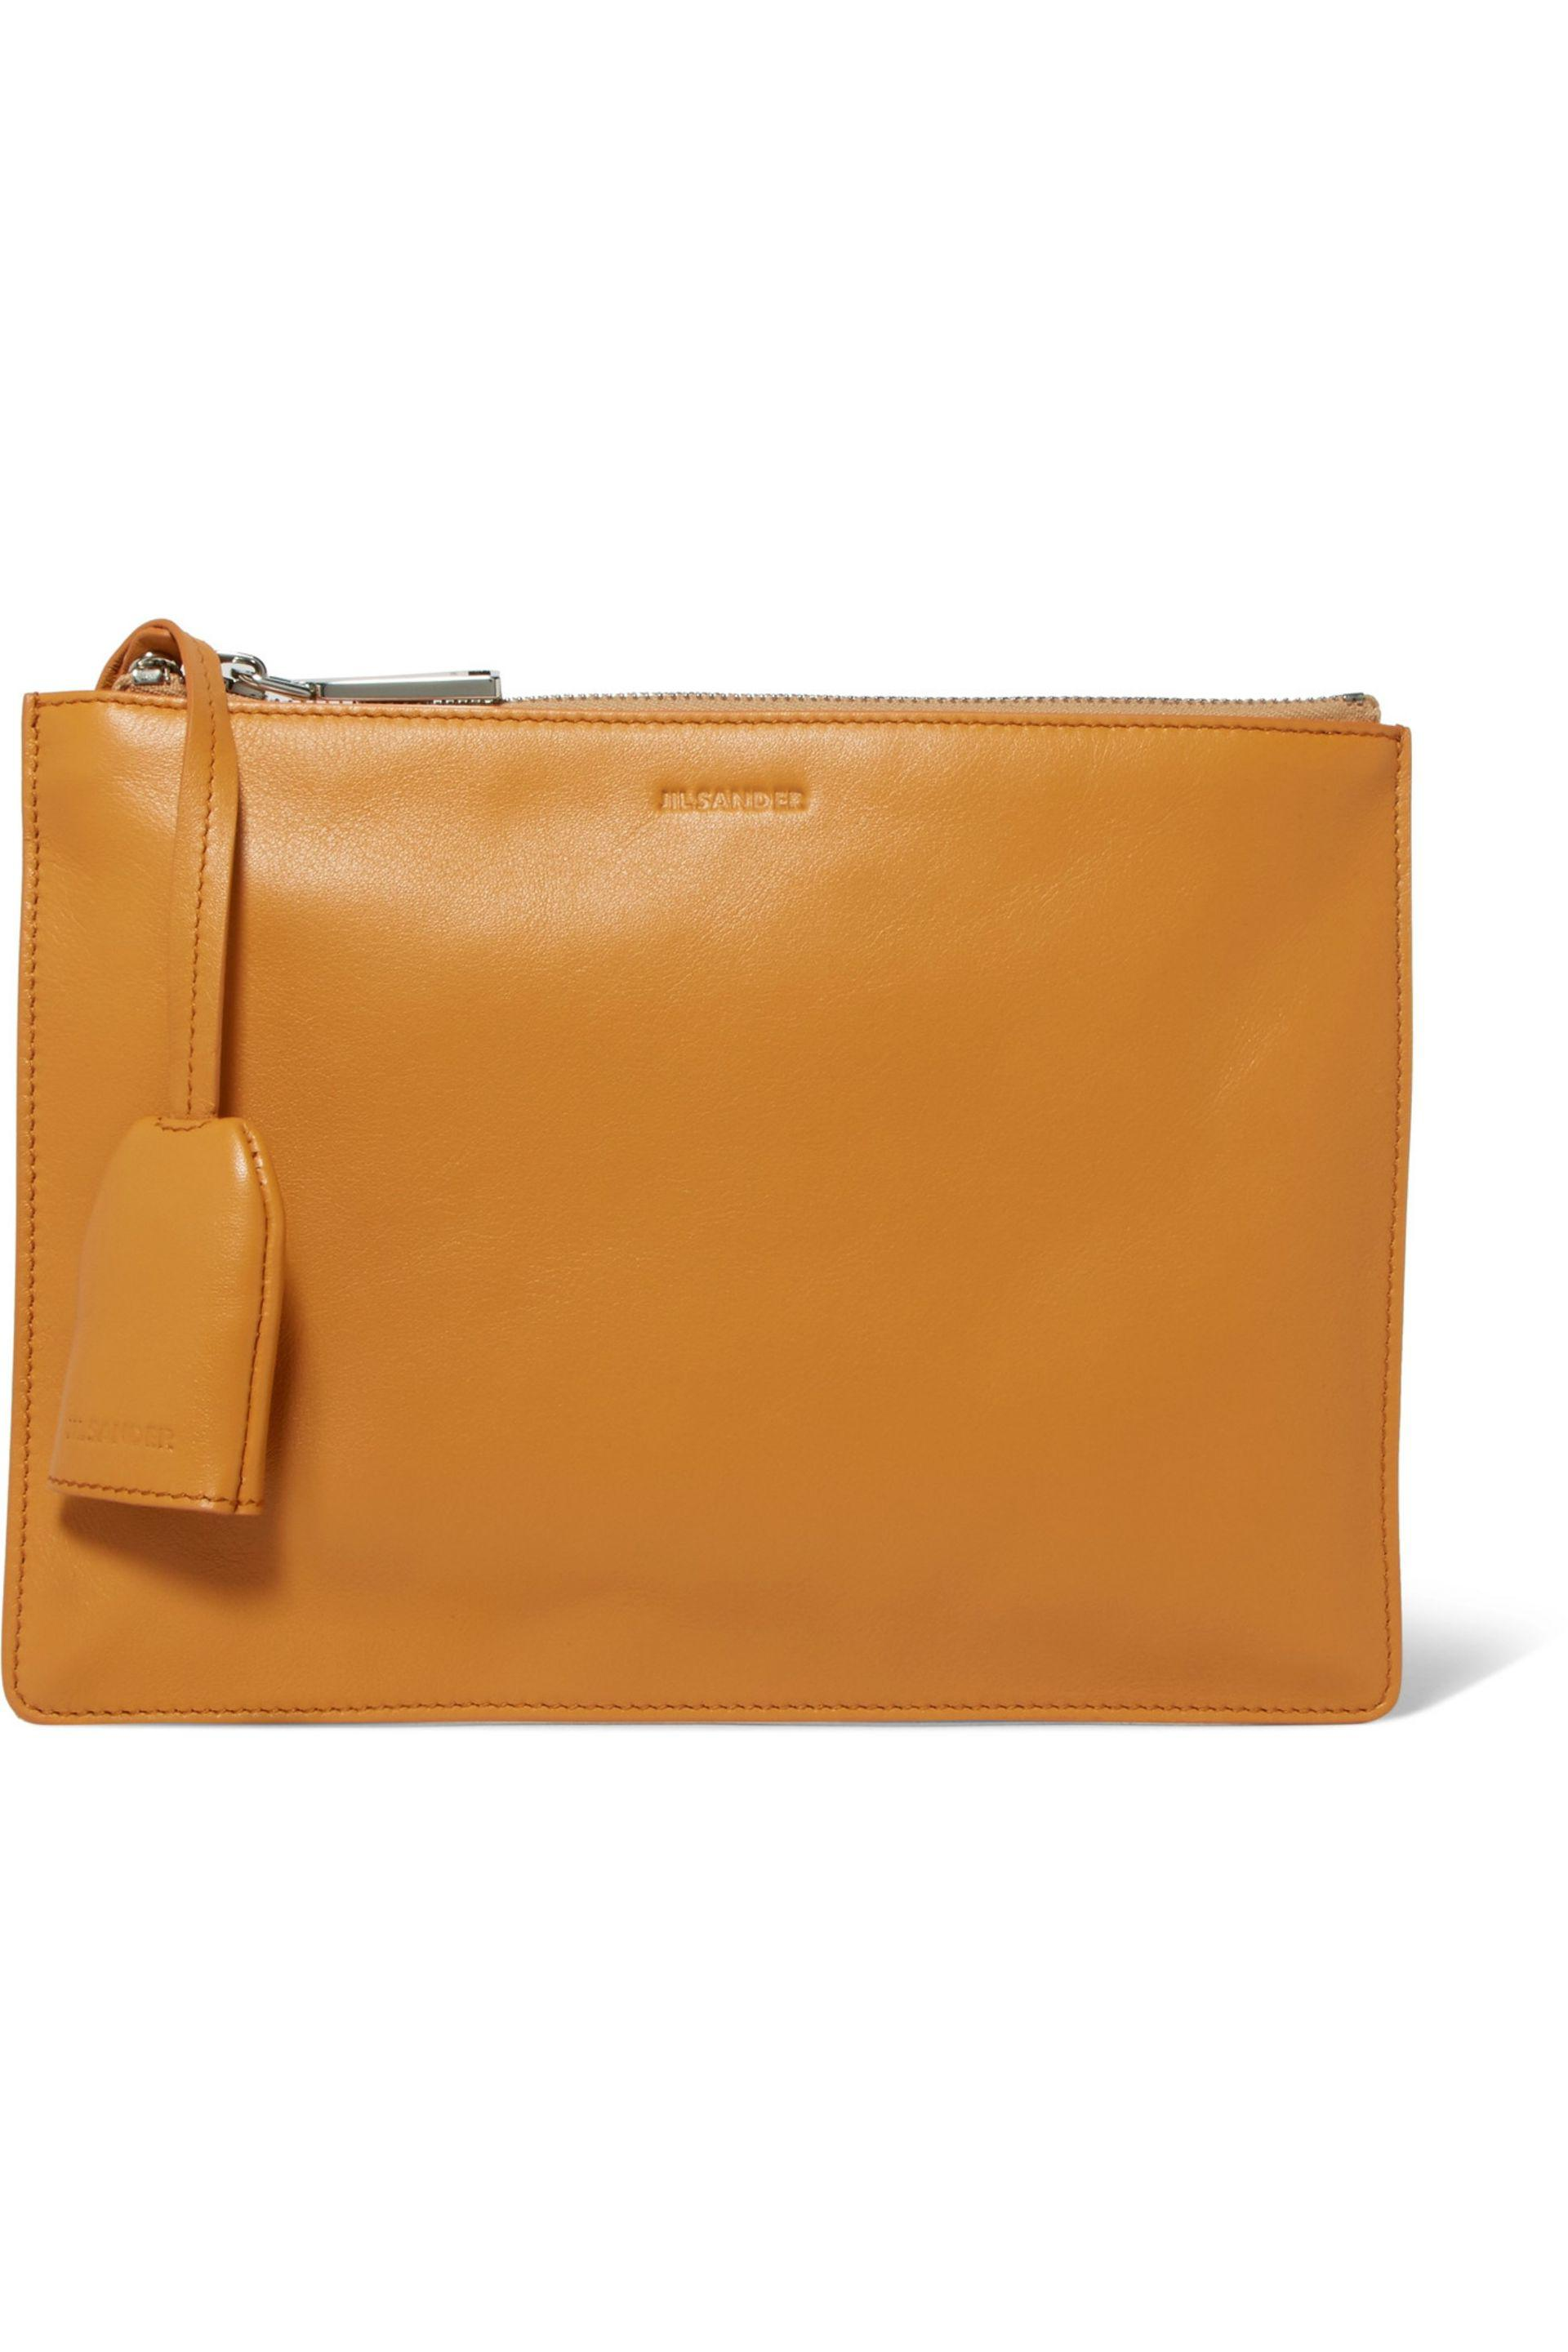 Pre-owned - LEATHER CLUTCH PURSE Jil Sander S75IbK